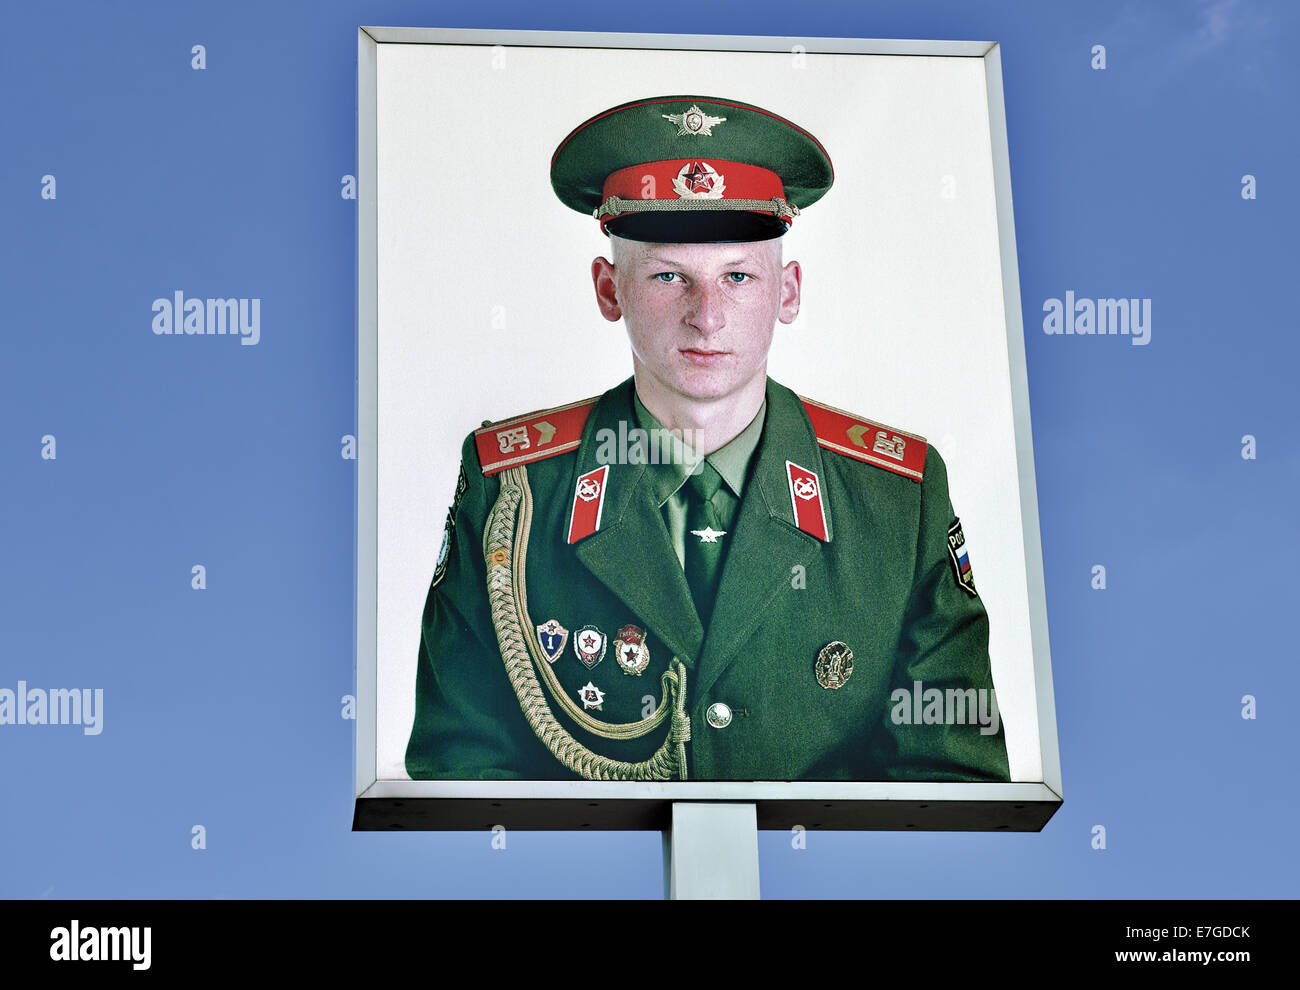 Germany, Berlin, Checkpoint Charlie, sowjet soldier, portrait, Frank Thiel, photographer, former border checkpoint, - Stock Image